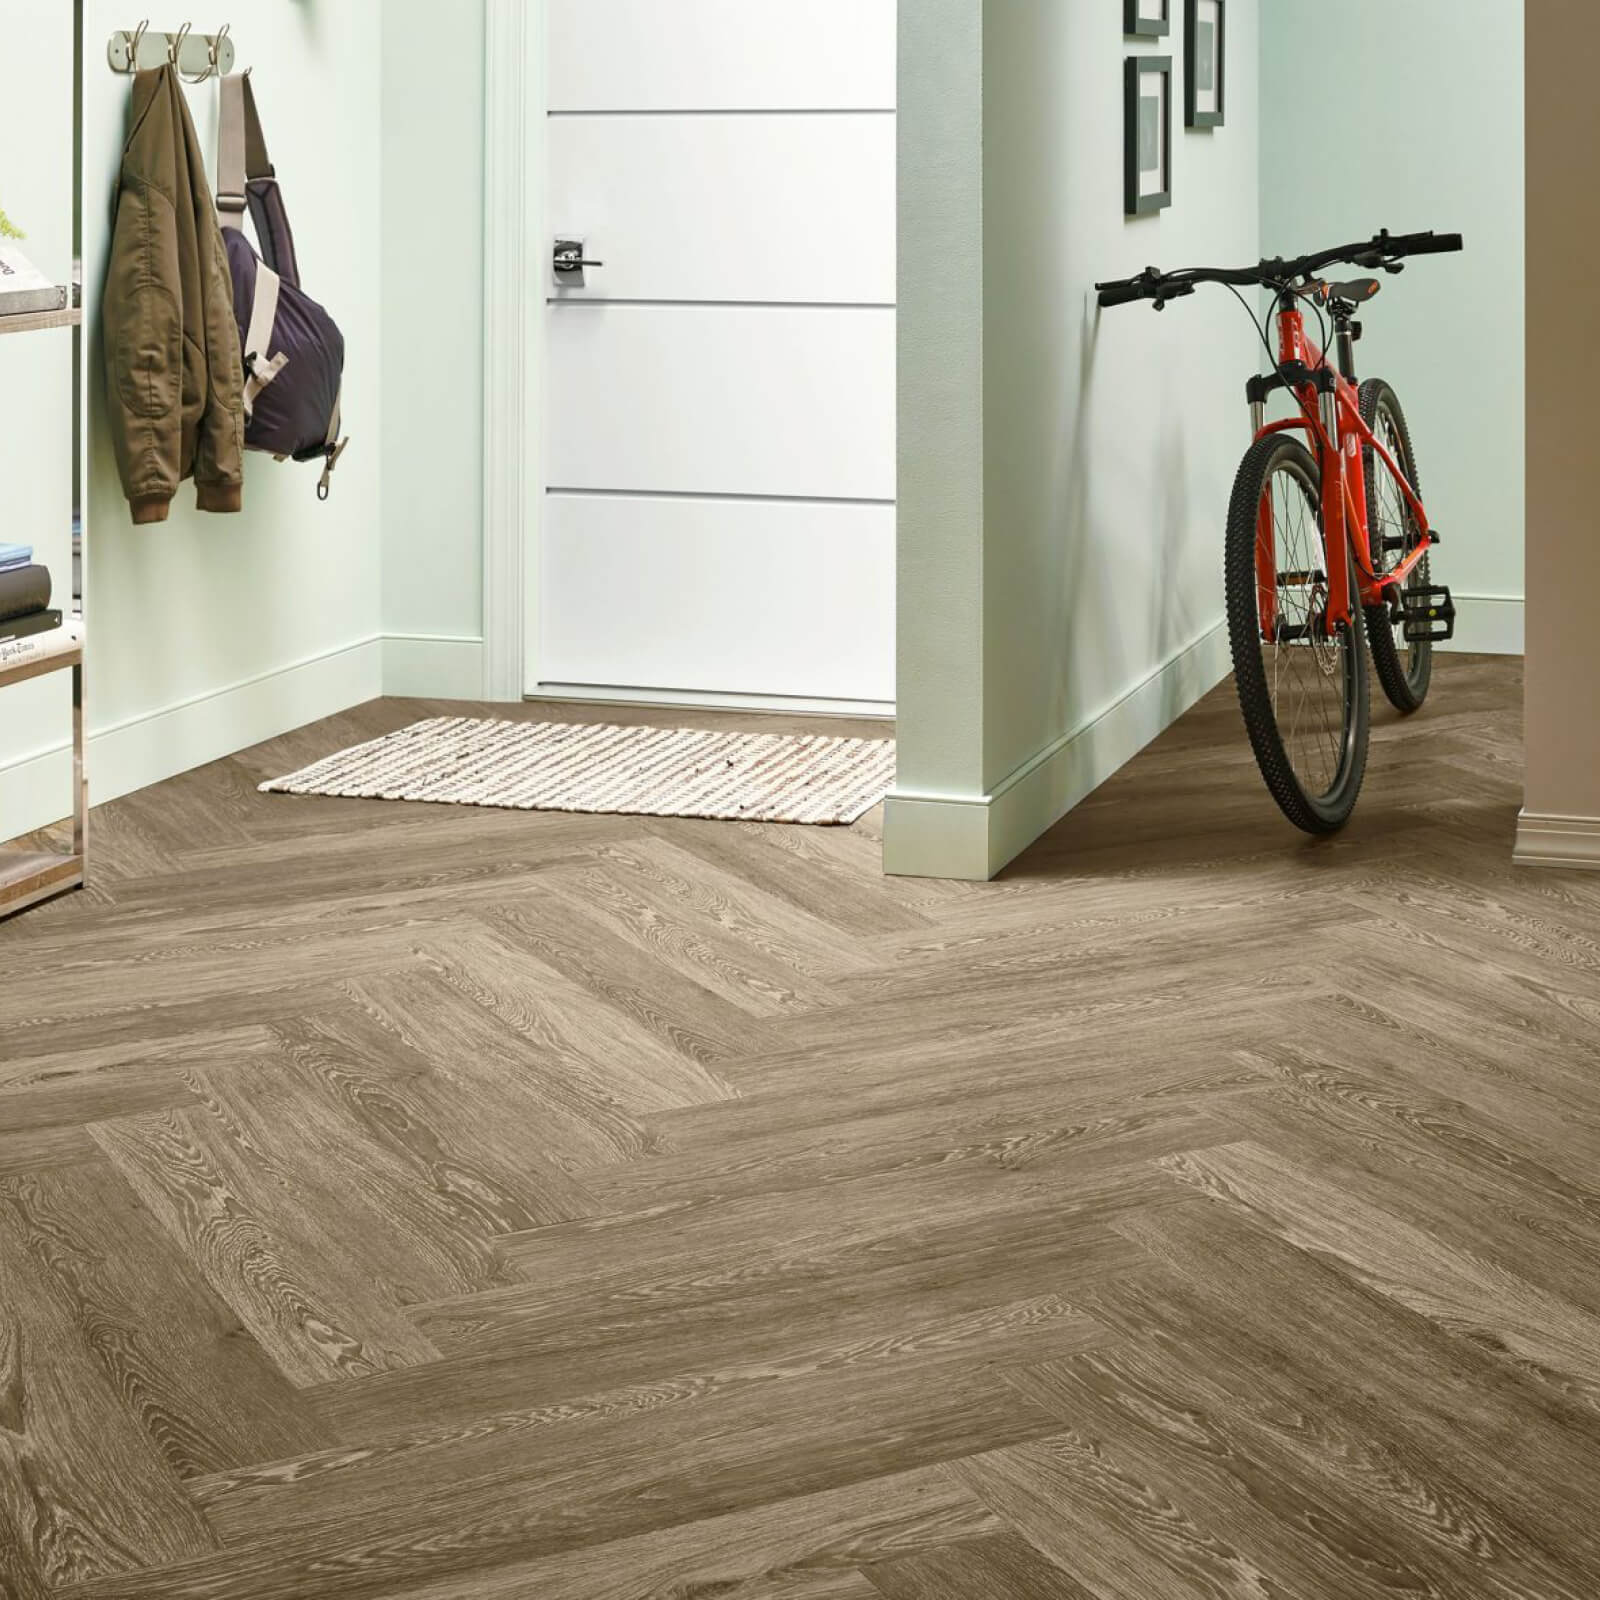 Bicycle on flooring | Georgia Flooring